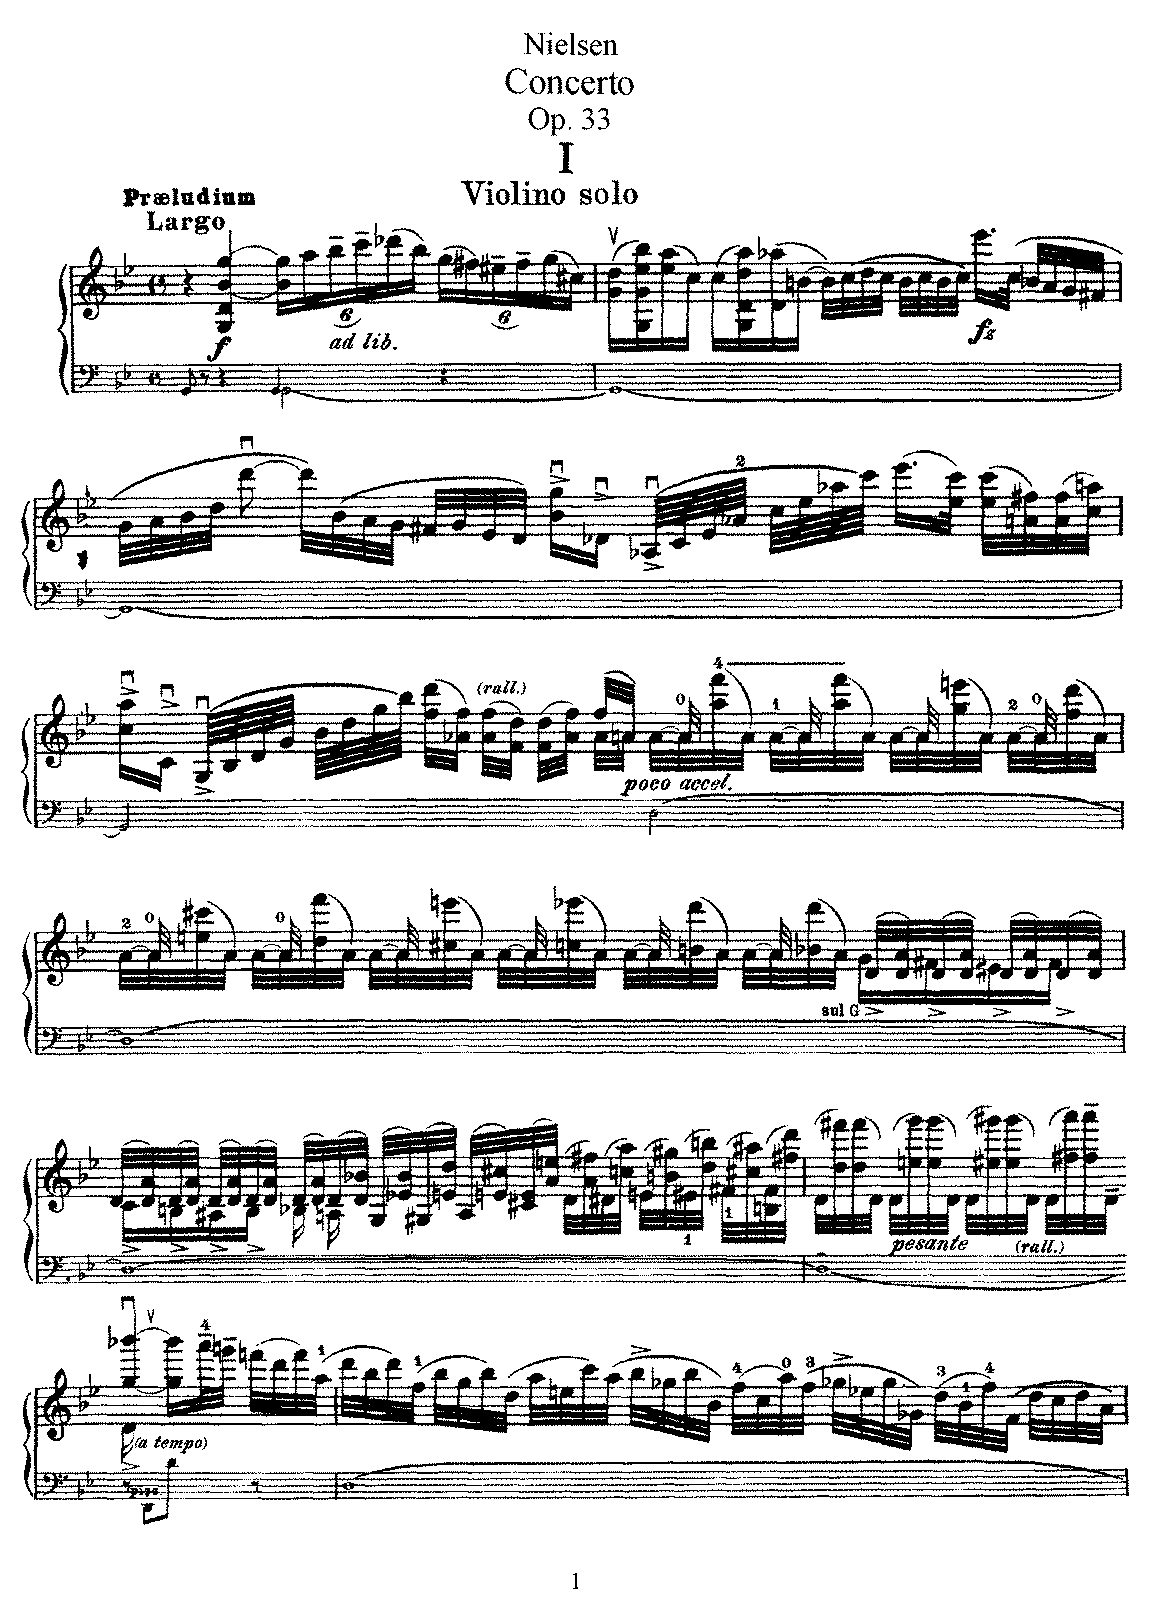 carl nielsen flute concerto analysis essay